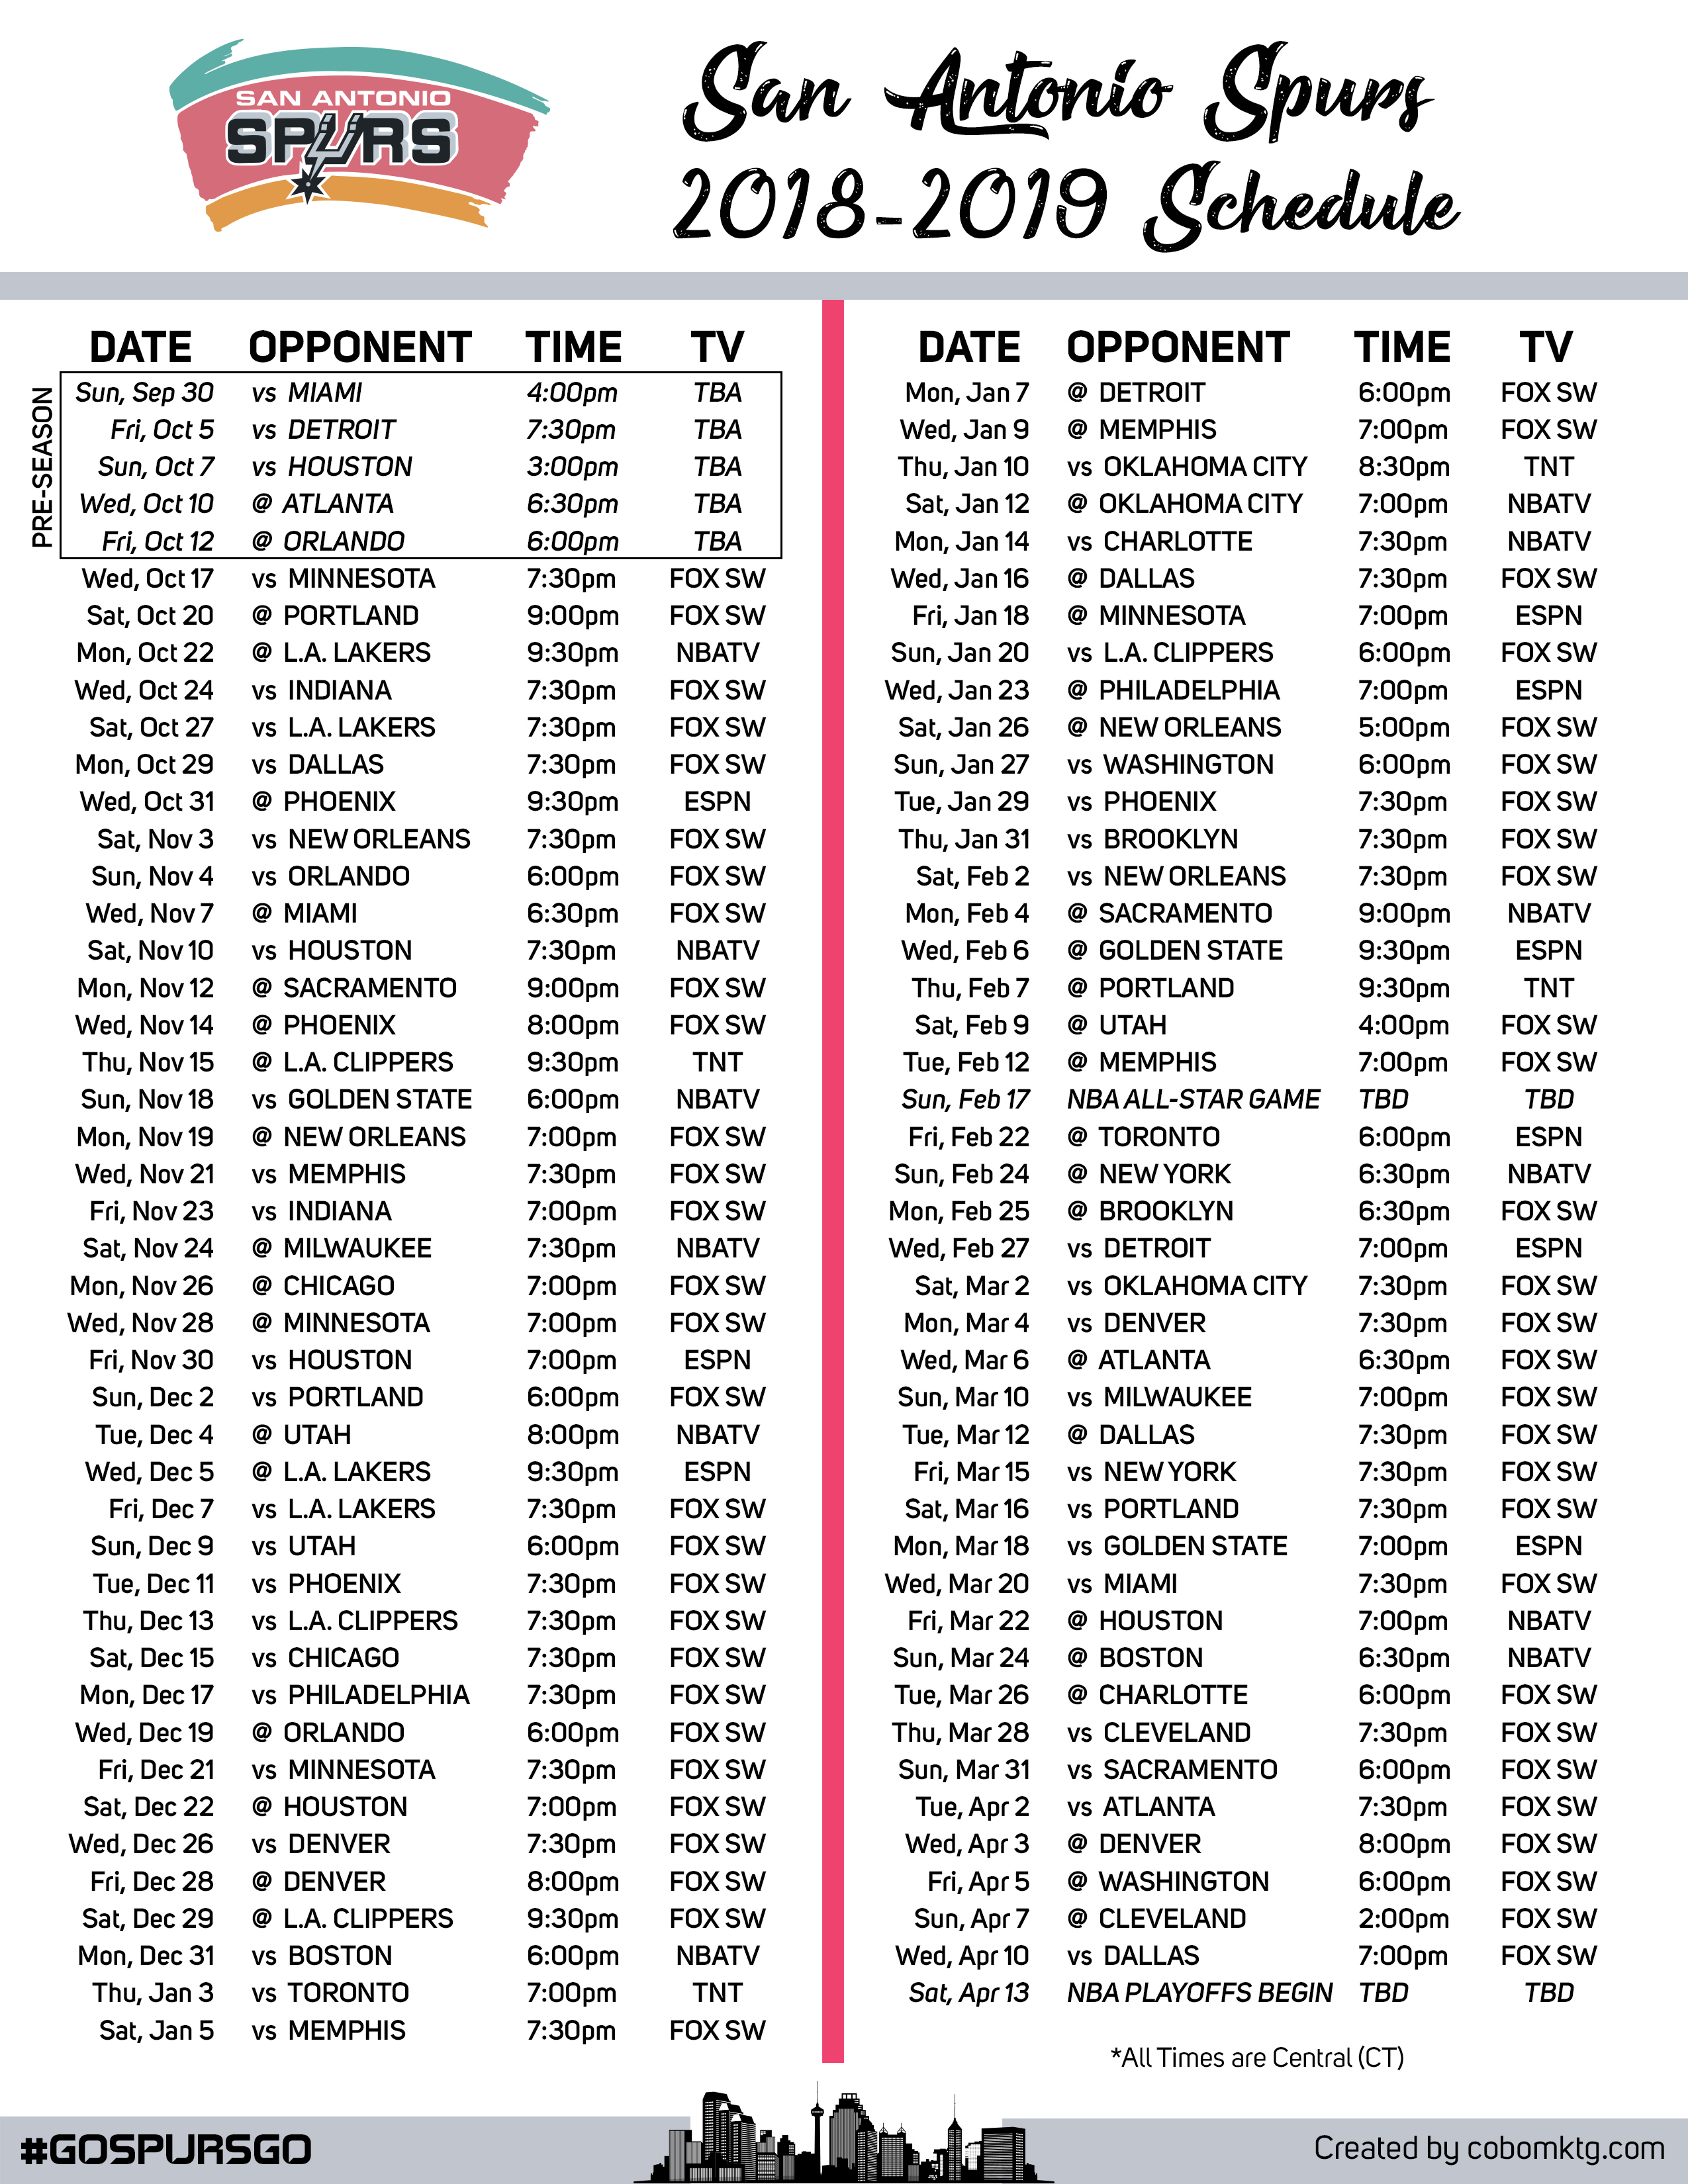 2018-2019 San Antonio Spurs Printable Schedule with TV and Central Times.